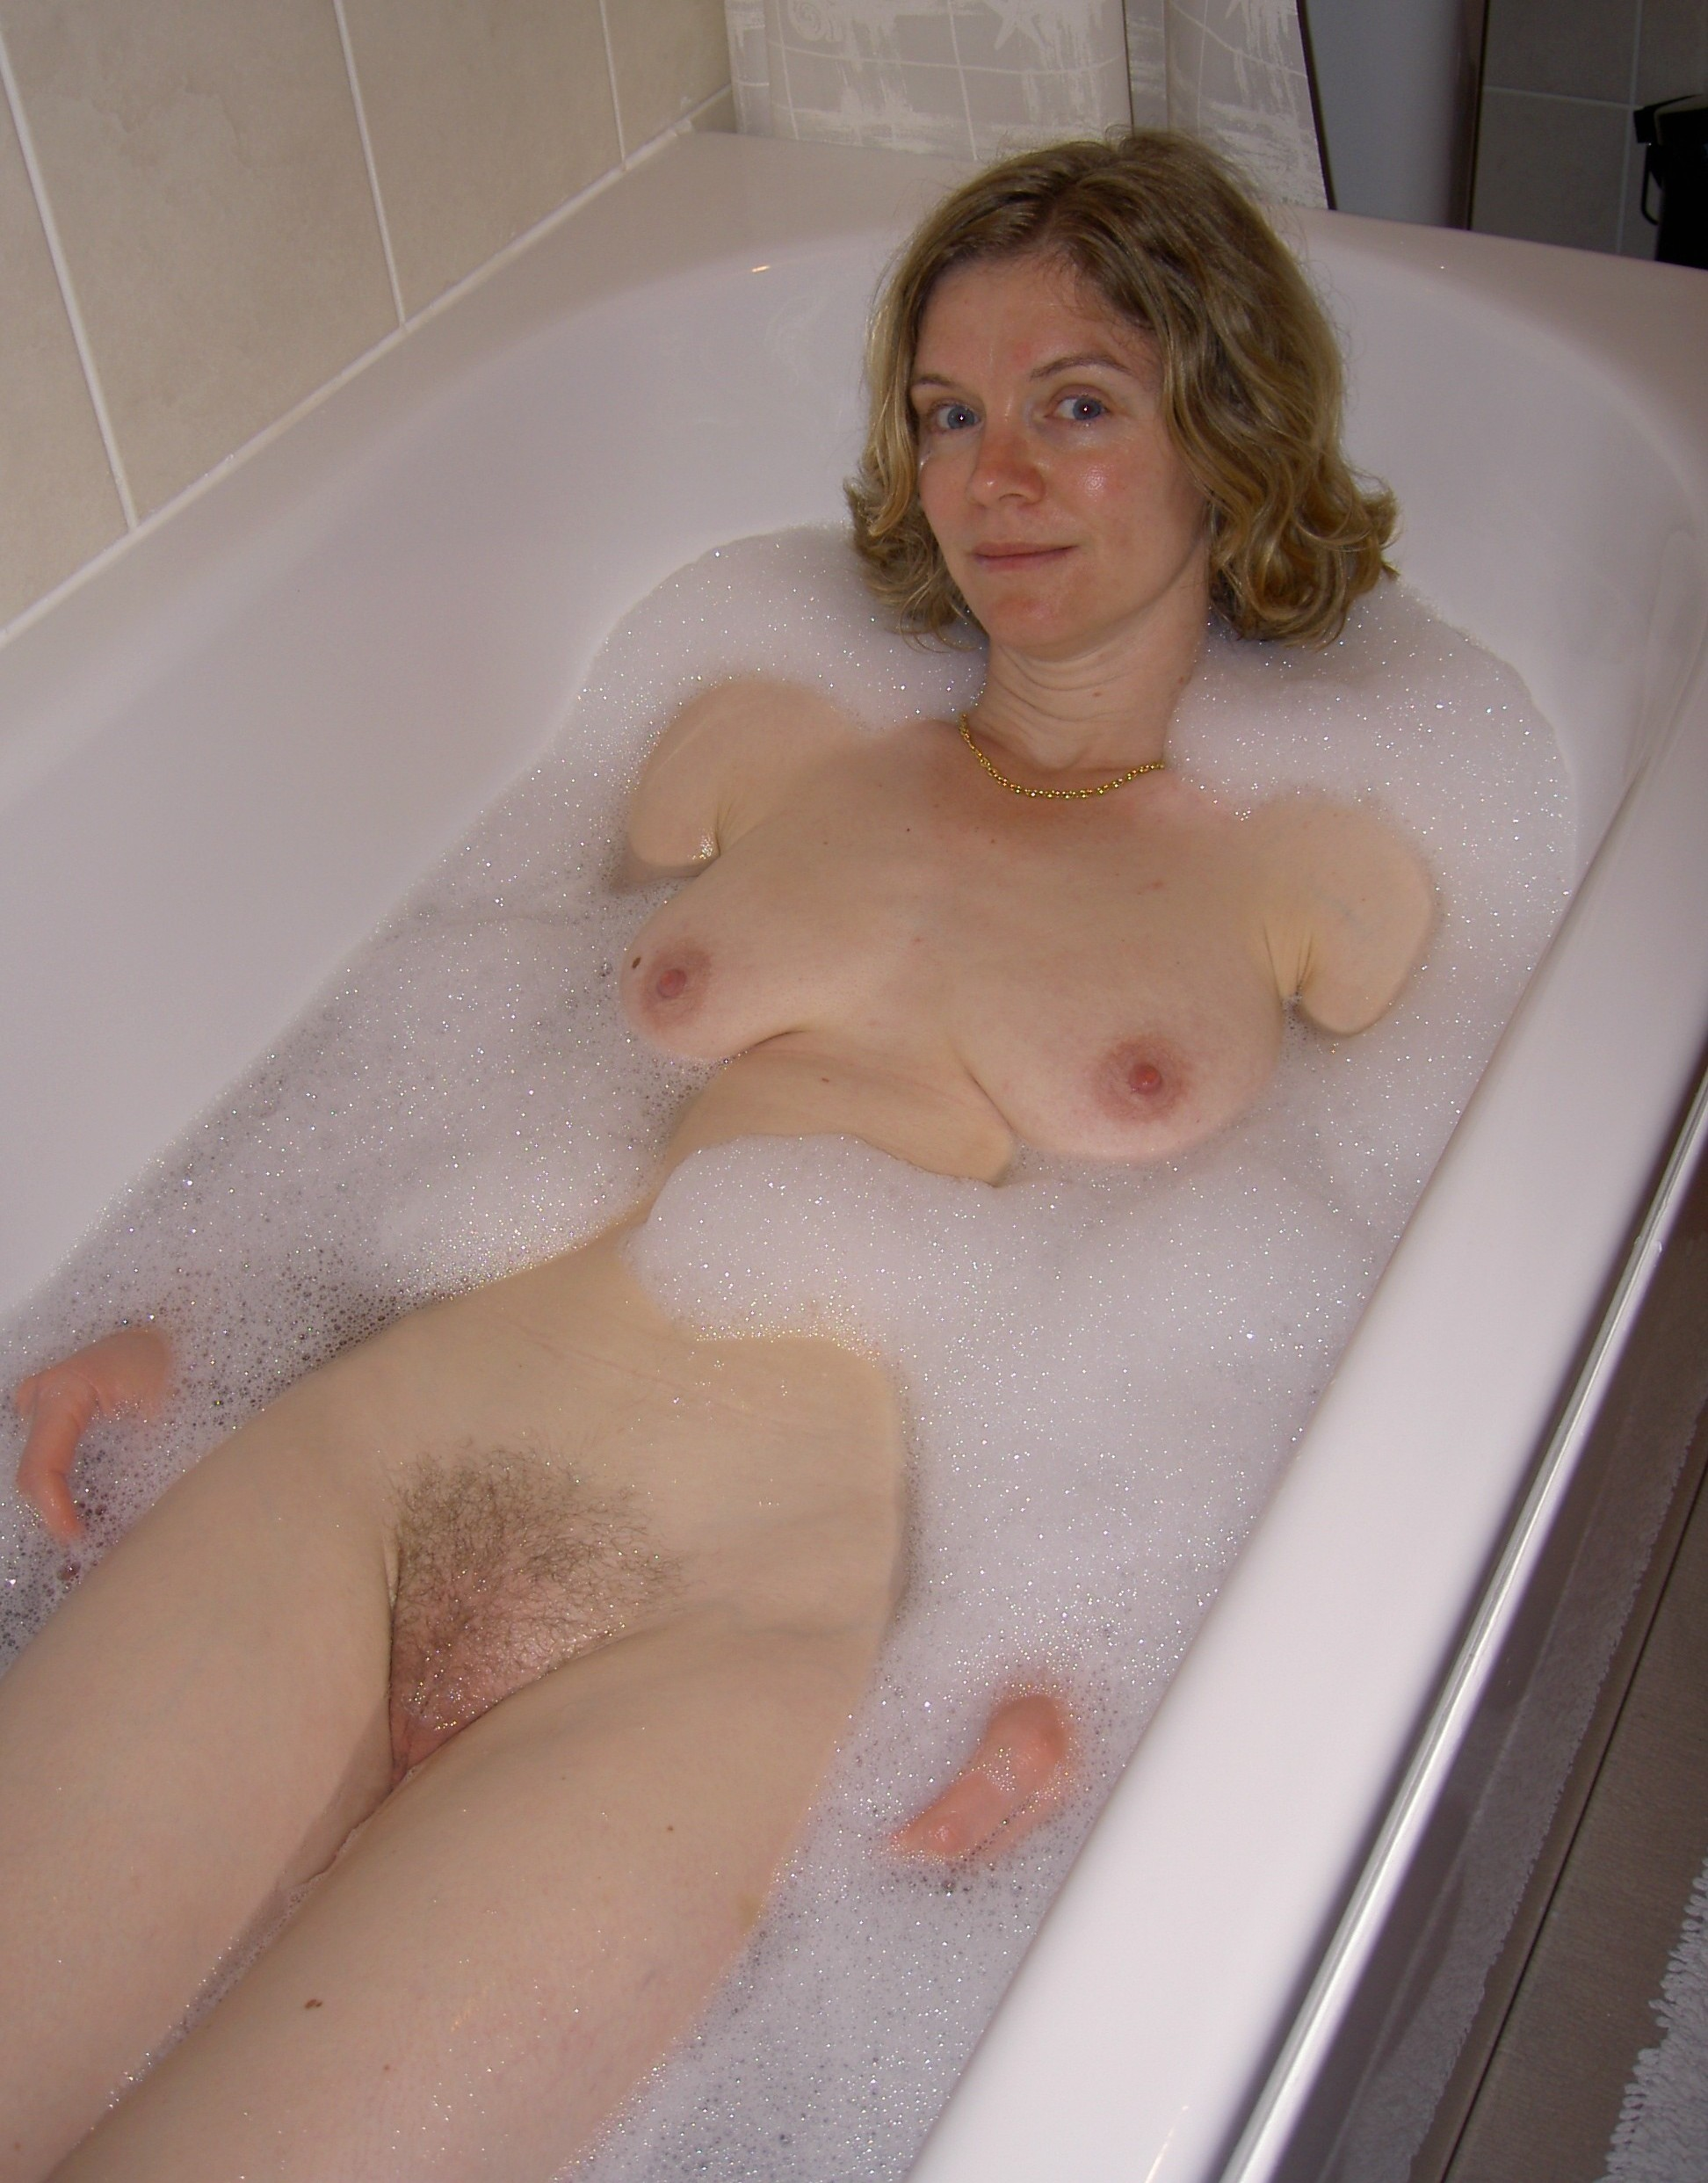 nude-girls-in-bathroom-in-their-periods-pics